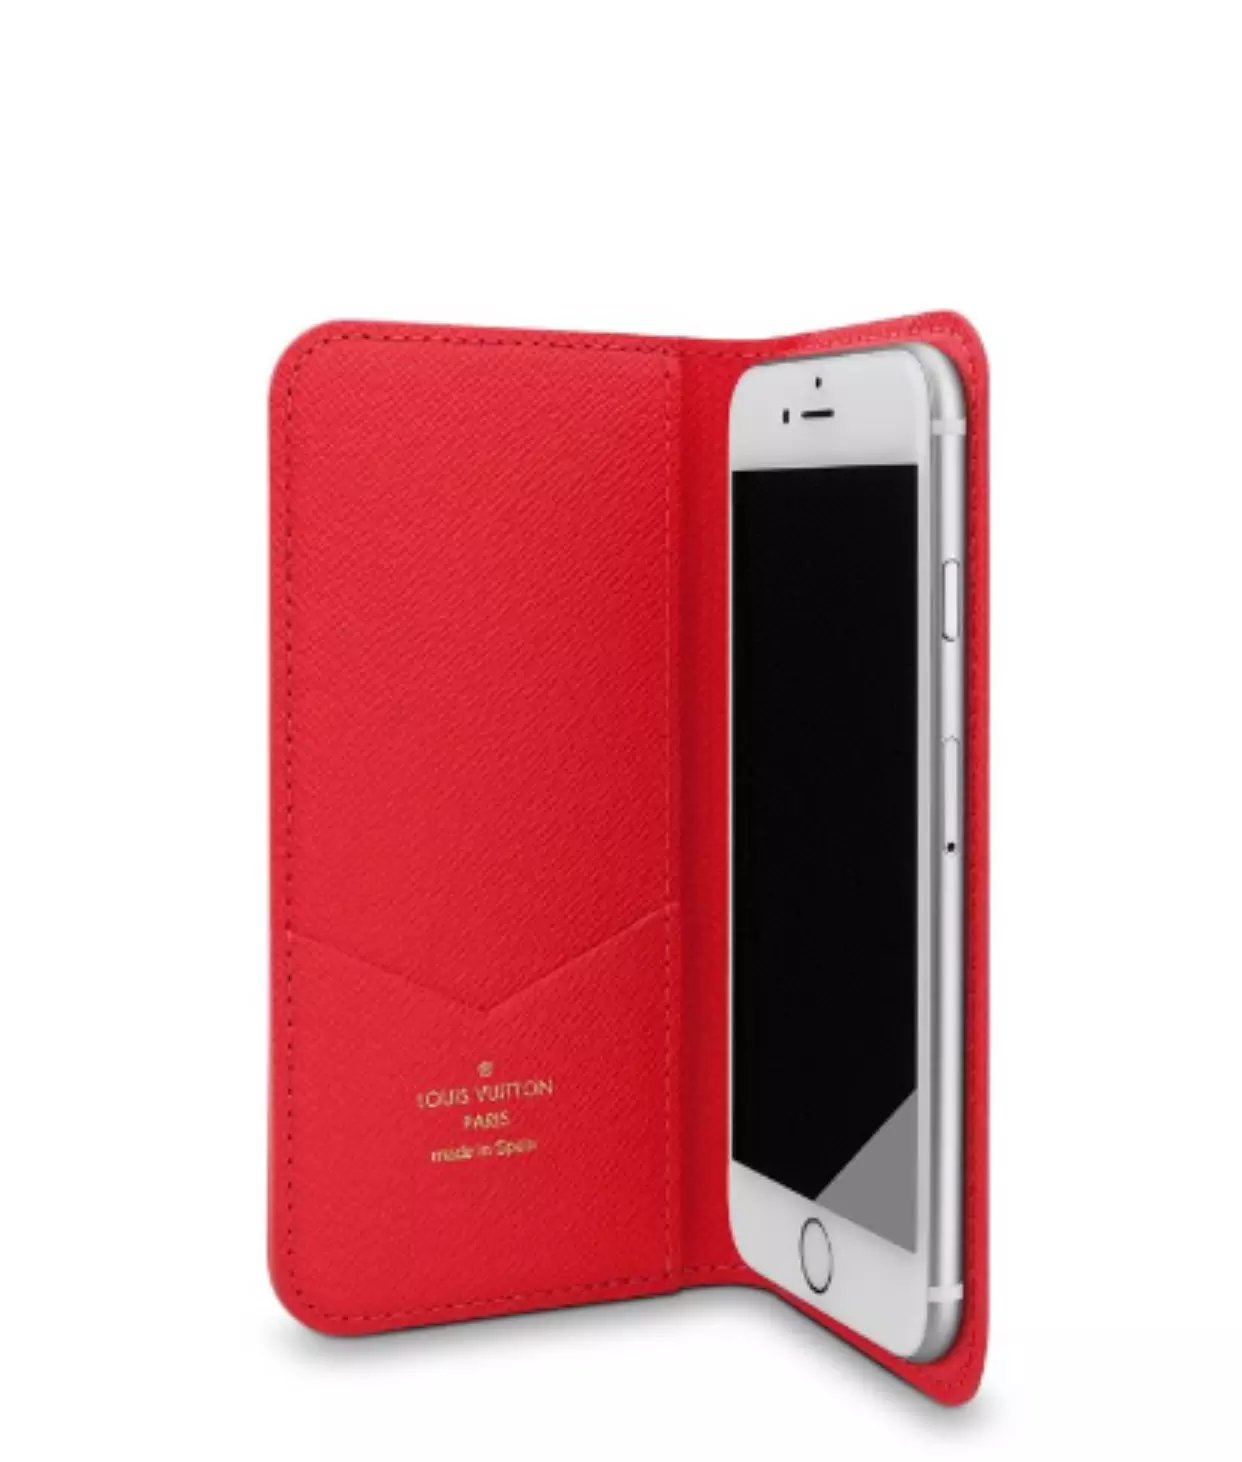 eigene iphone hülle erstellen iphone hülle leder Louis Vuitton iphone7 Plus hülle iphone fotos datum größe 6 handy cover handycover 7lbst gestalten samsung galaxy s3 iphone 7 Plus und 7 leder ca7 iphone